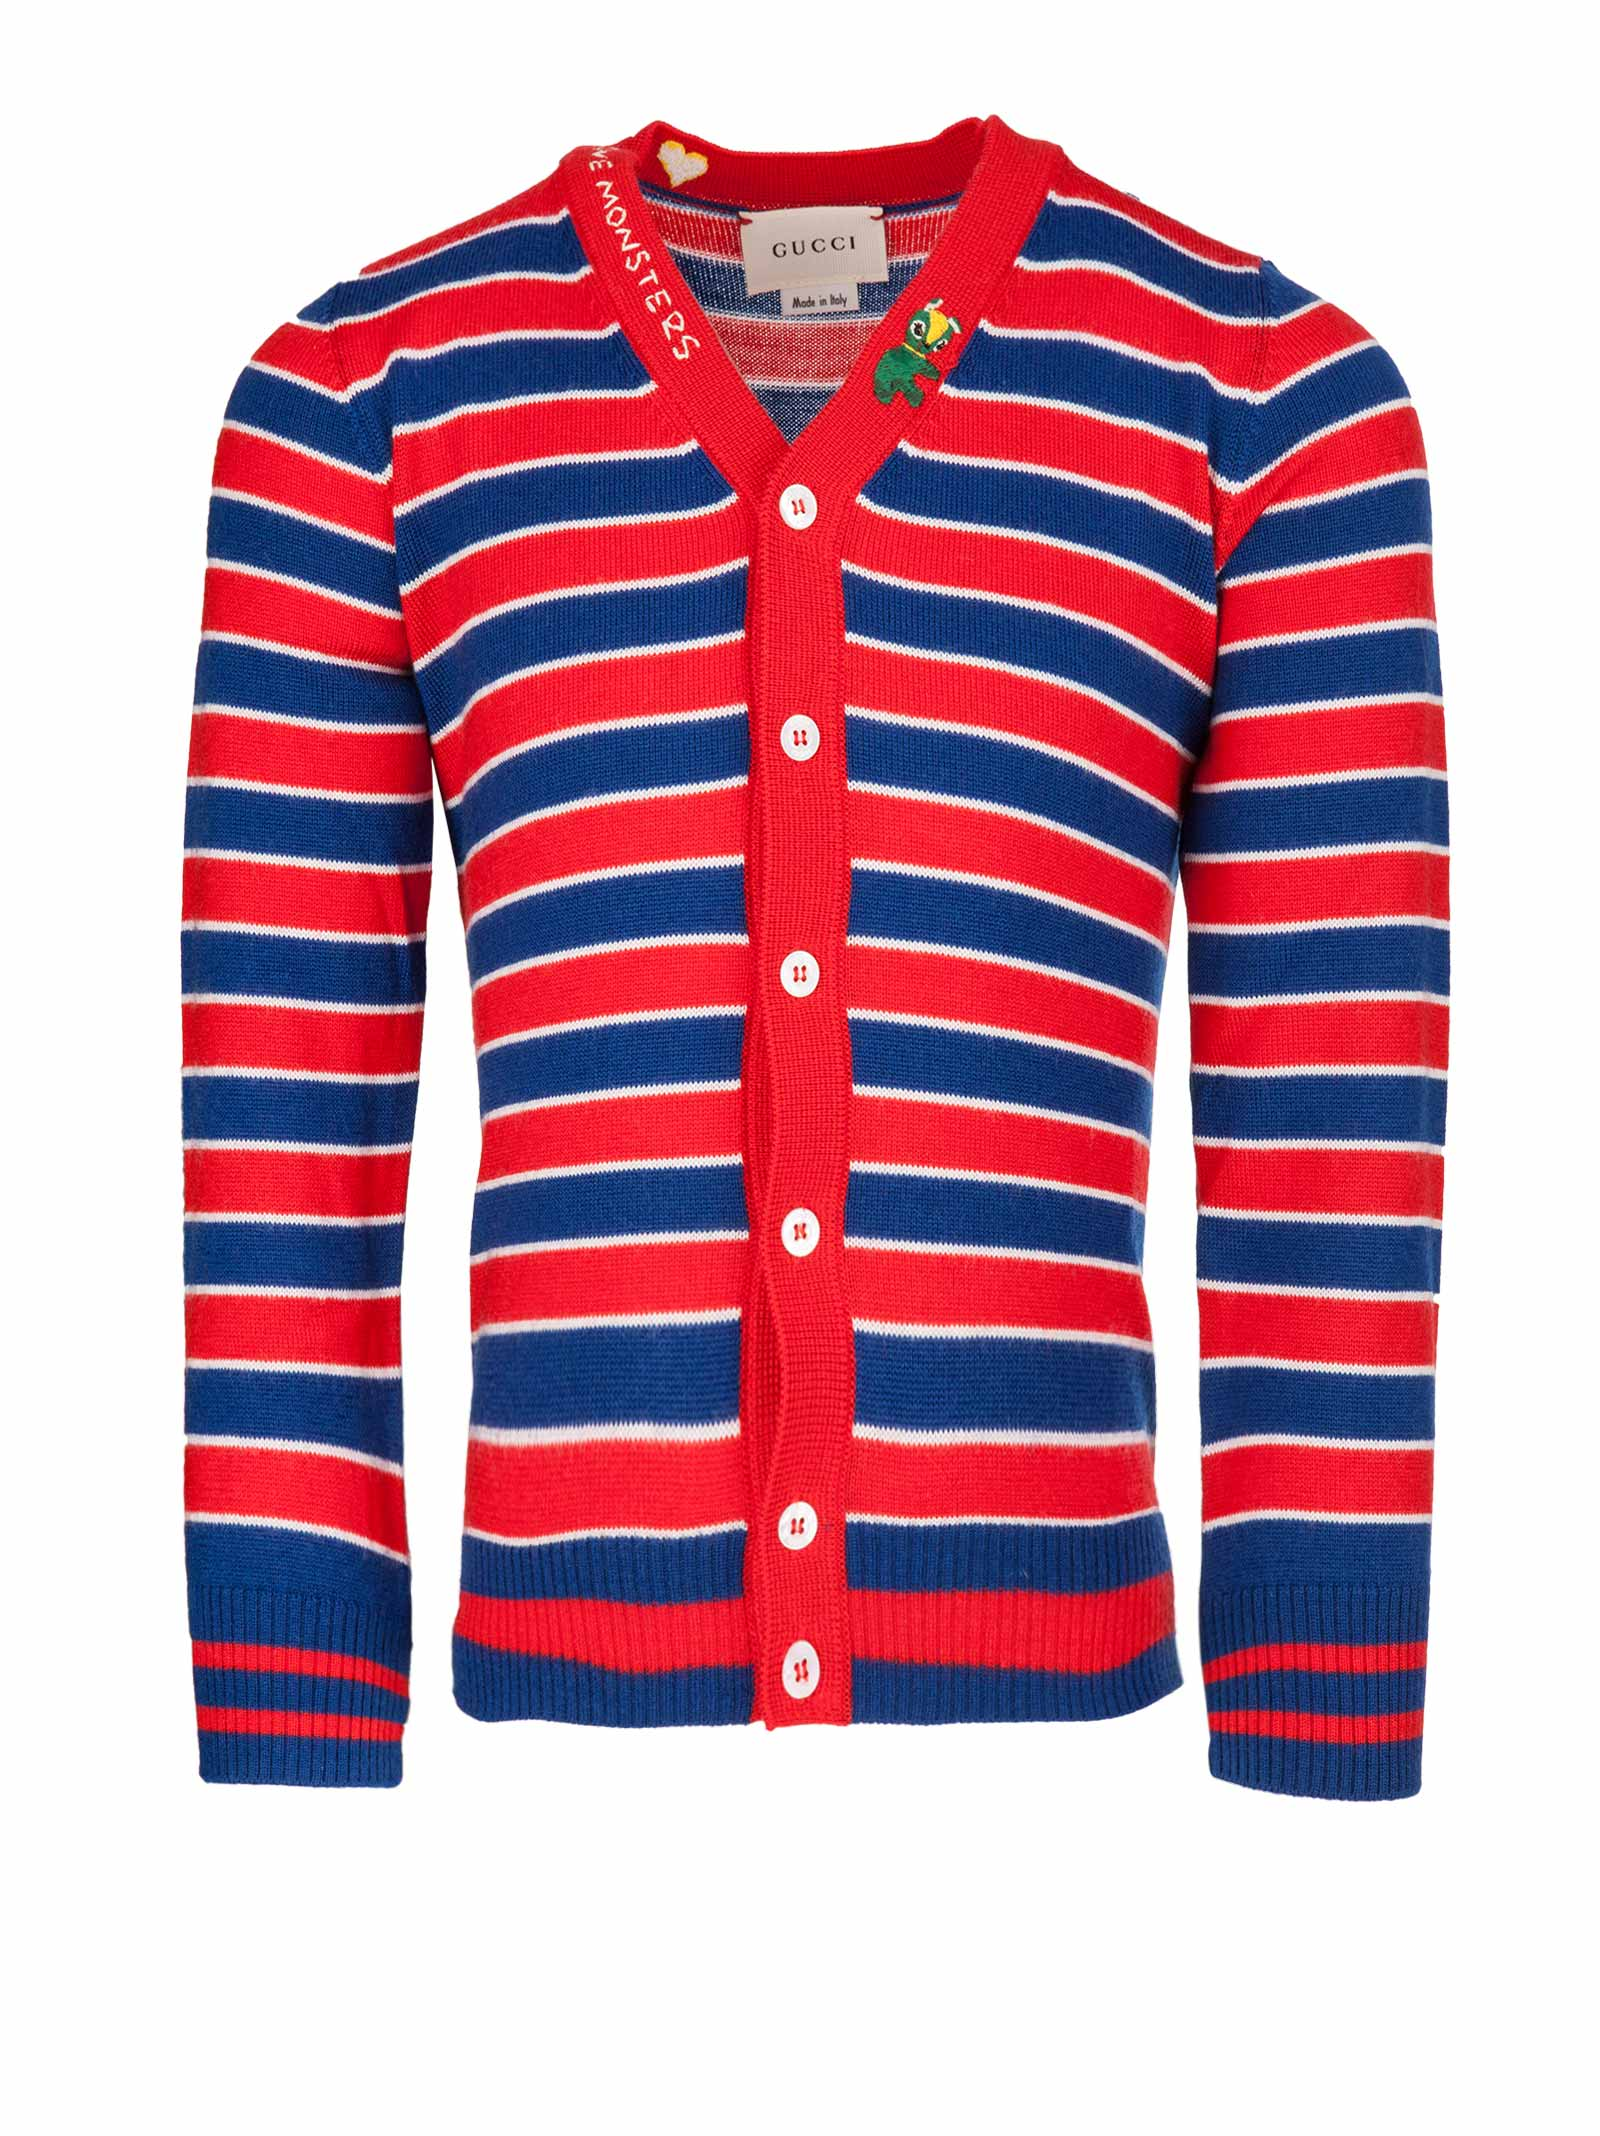 52ceb797bd2 Gucci Junior Cardigan - Gucci Junior - Michele Franzese Moda